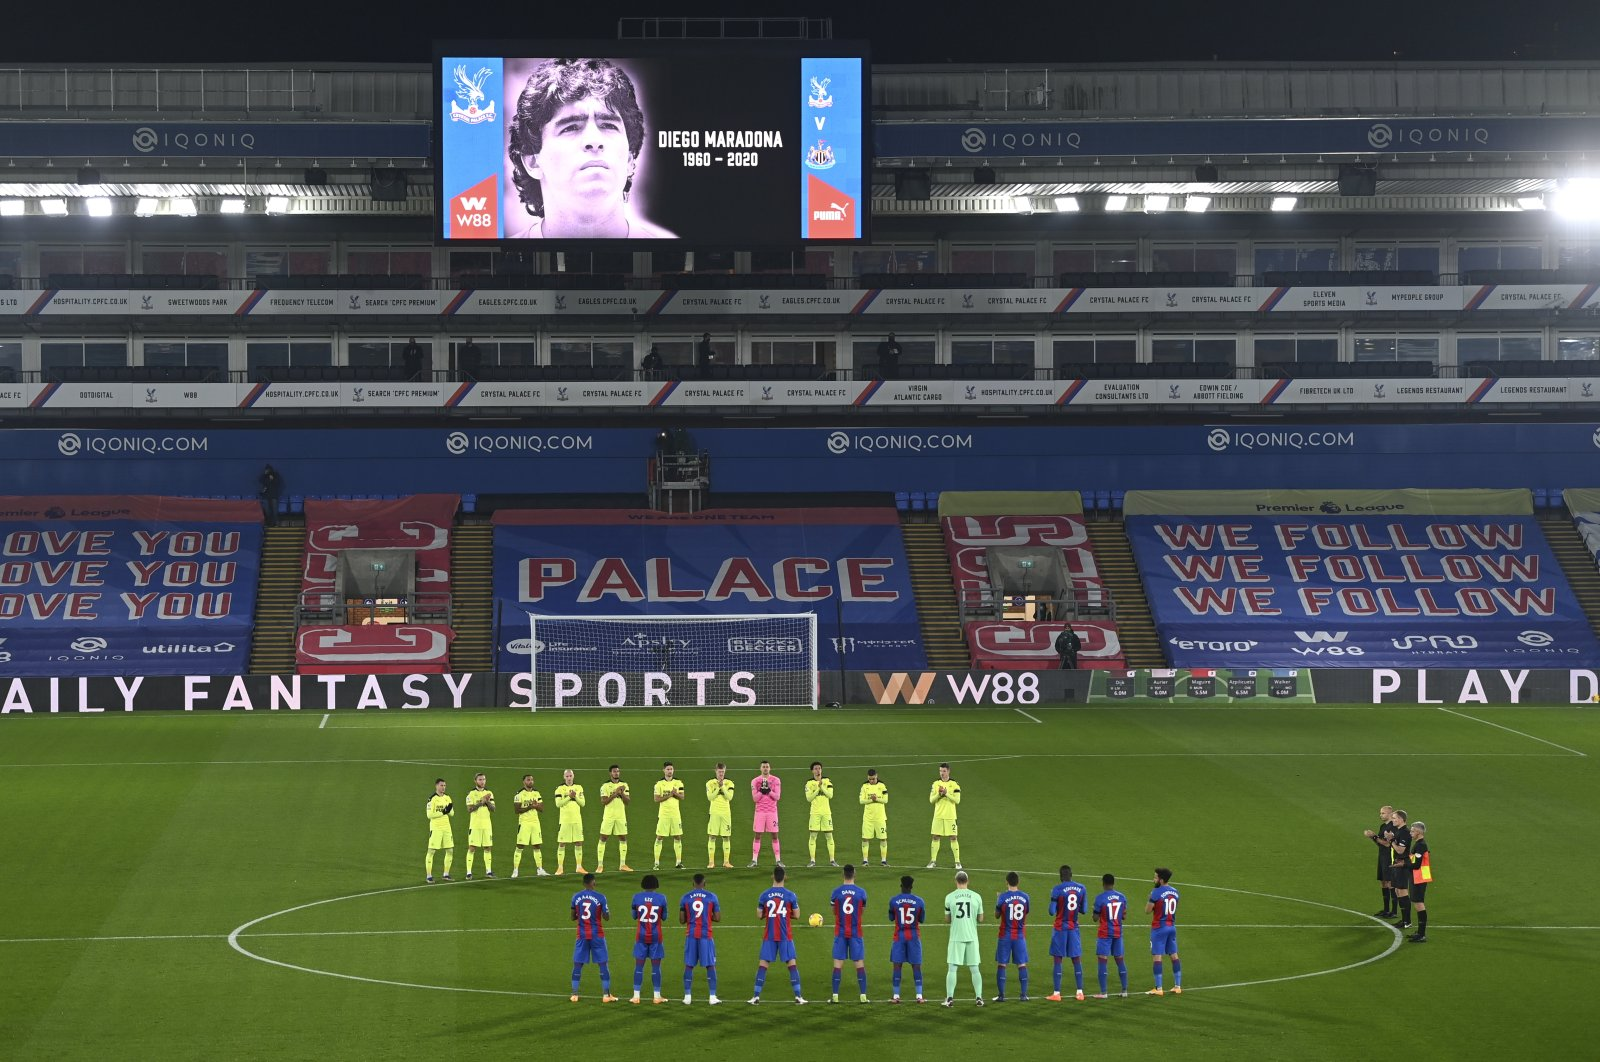 Players applaud as a mark of respect for Diego Maradona ahead of the Premier League match between Crystal Palace and Newcastle United, in London, Britain, Nov. 27, 2020. (AP Photo)